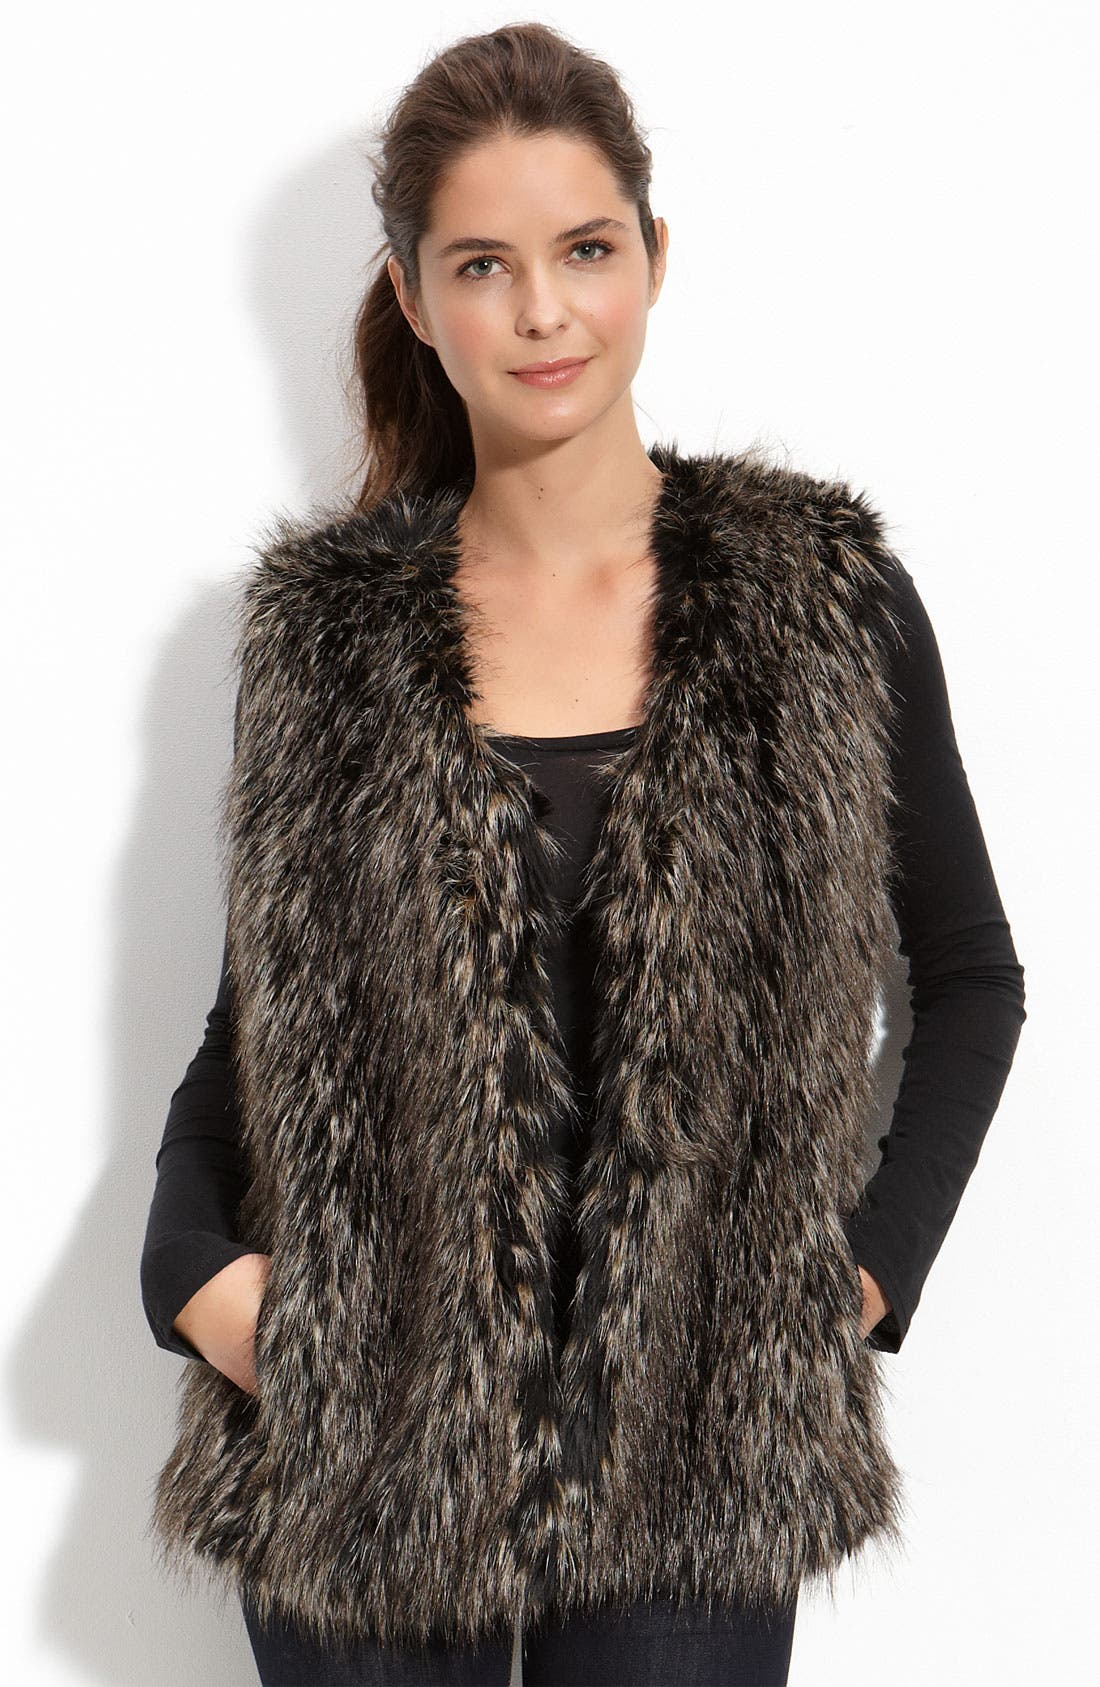 'Savona' Faux Fur Vest,                             Main thumbnail 1, color,                             001